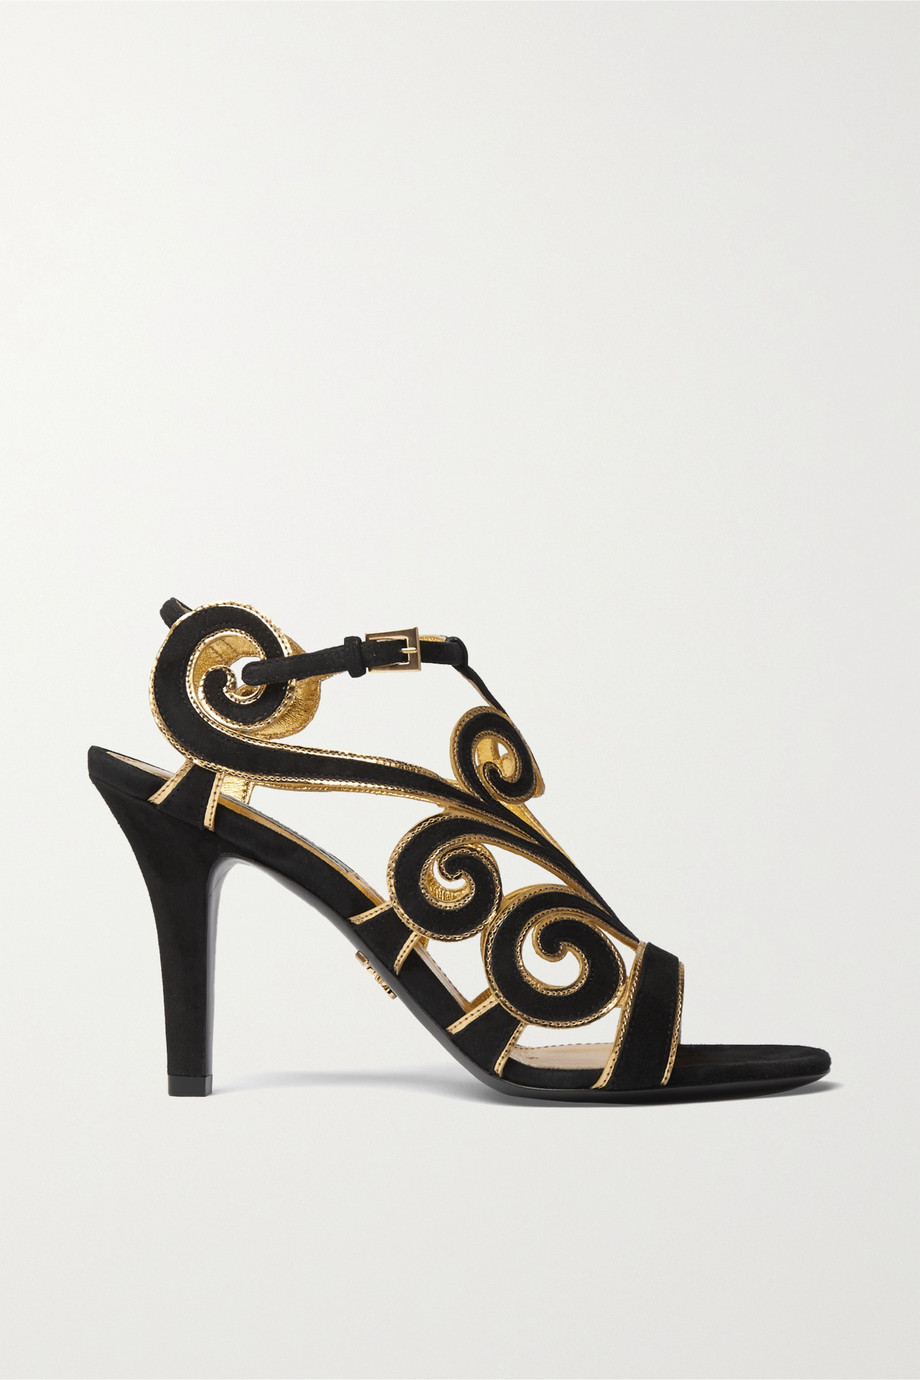 Prada Suede and metallic leather sandals